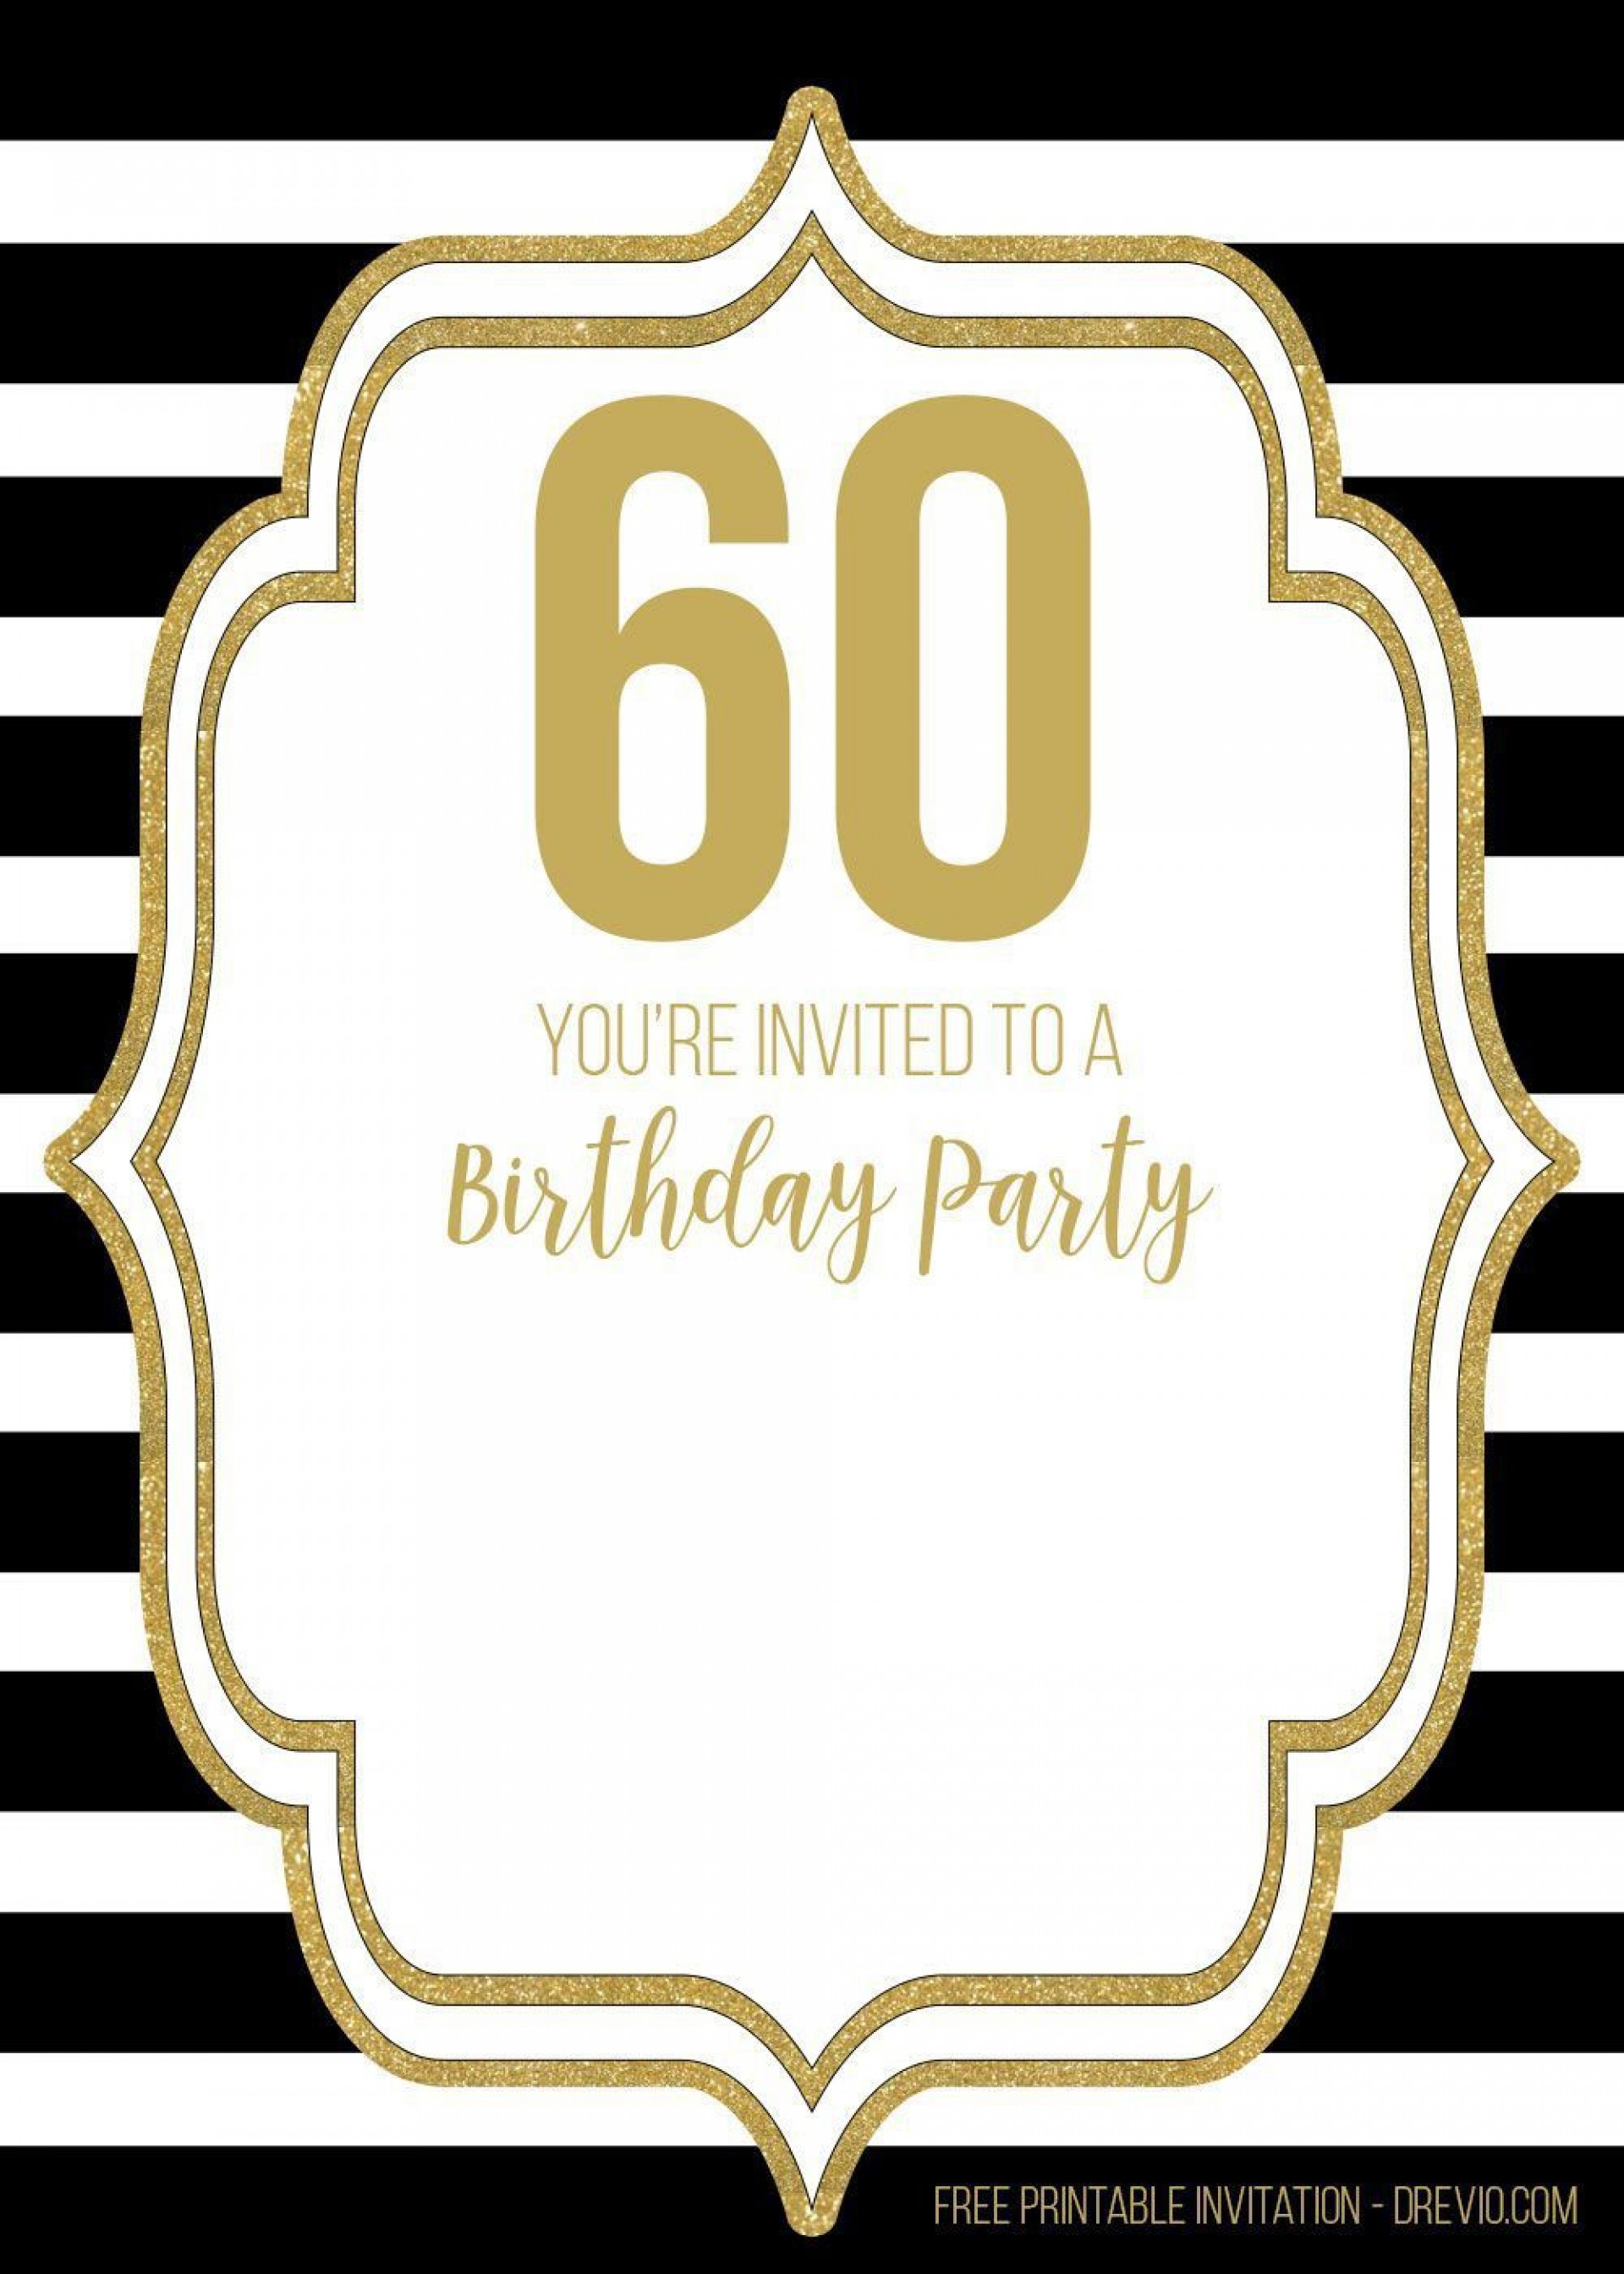 007 Unusual 60 Birthday Invite Template High Definition  Templates 60th Printable Free1920